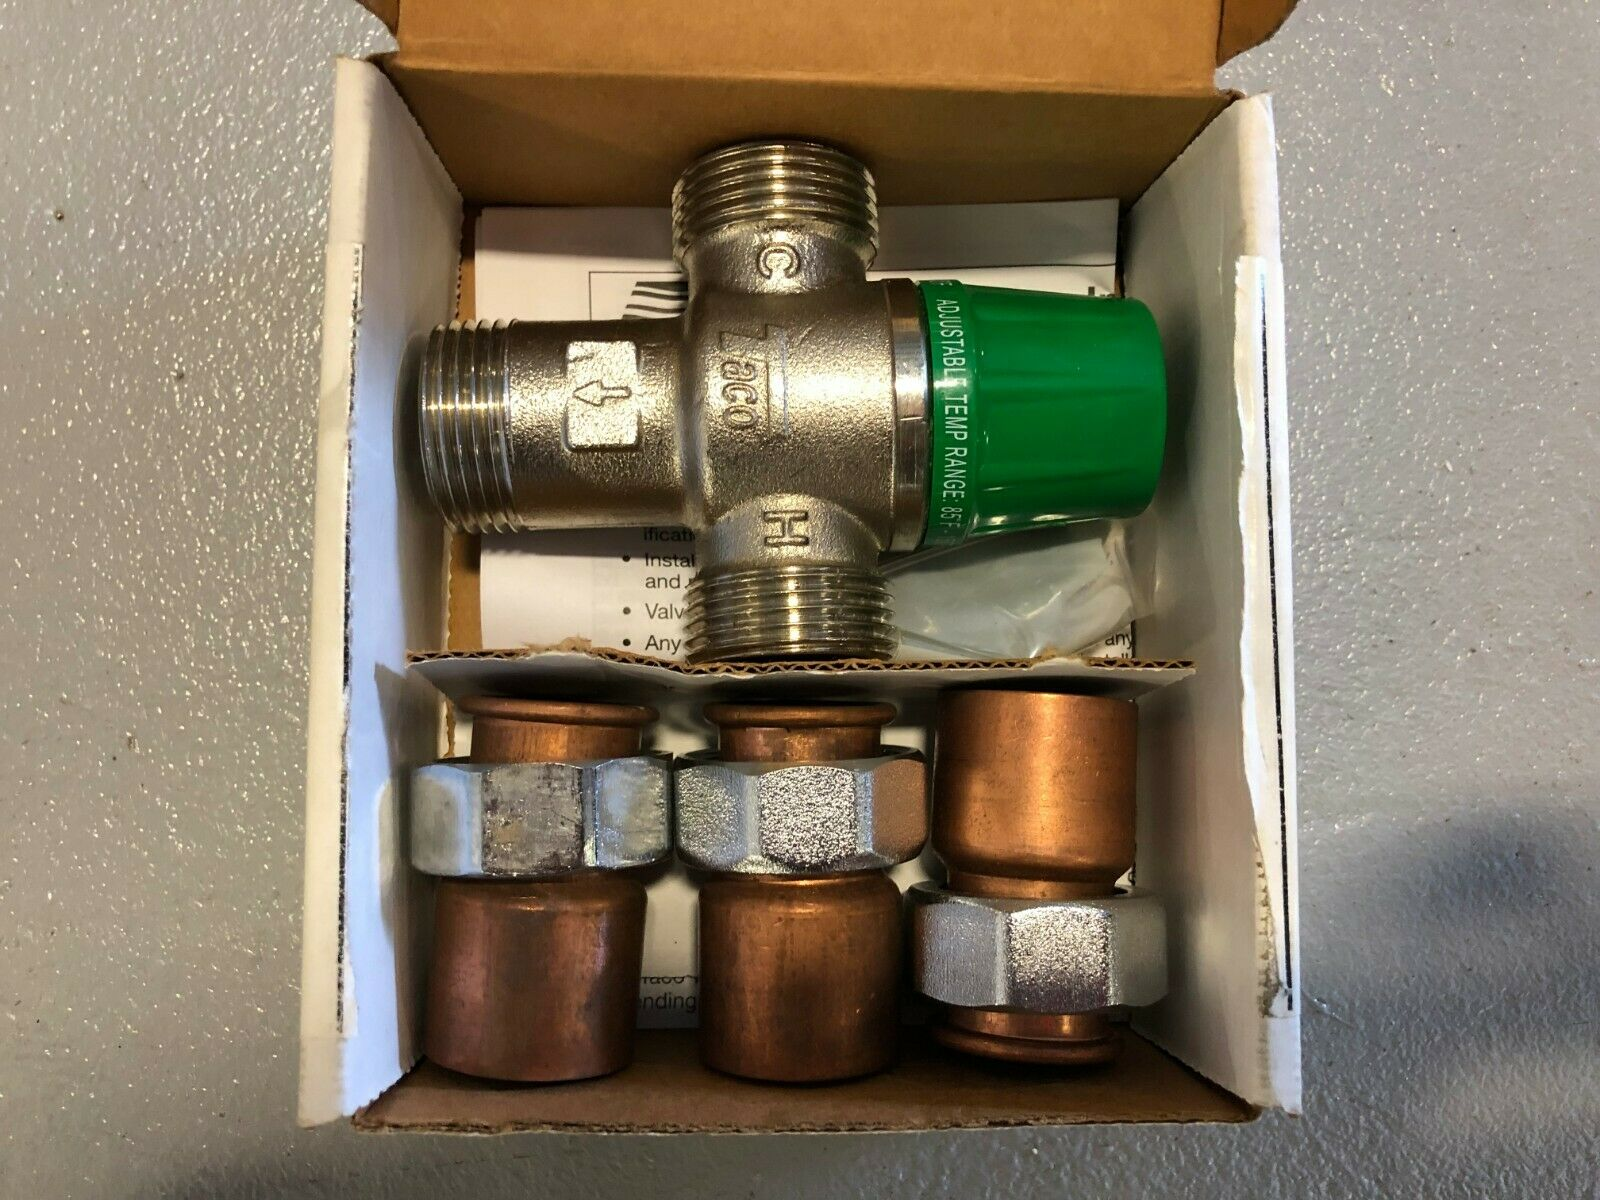 Mixing Valve Forged Brass 1 To 20 Gpm Taco 5003 C3 G Business Industrial Hydraulics Pneumatics Pumps Plumbing